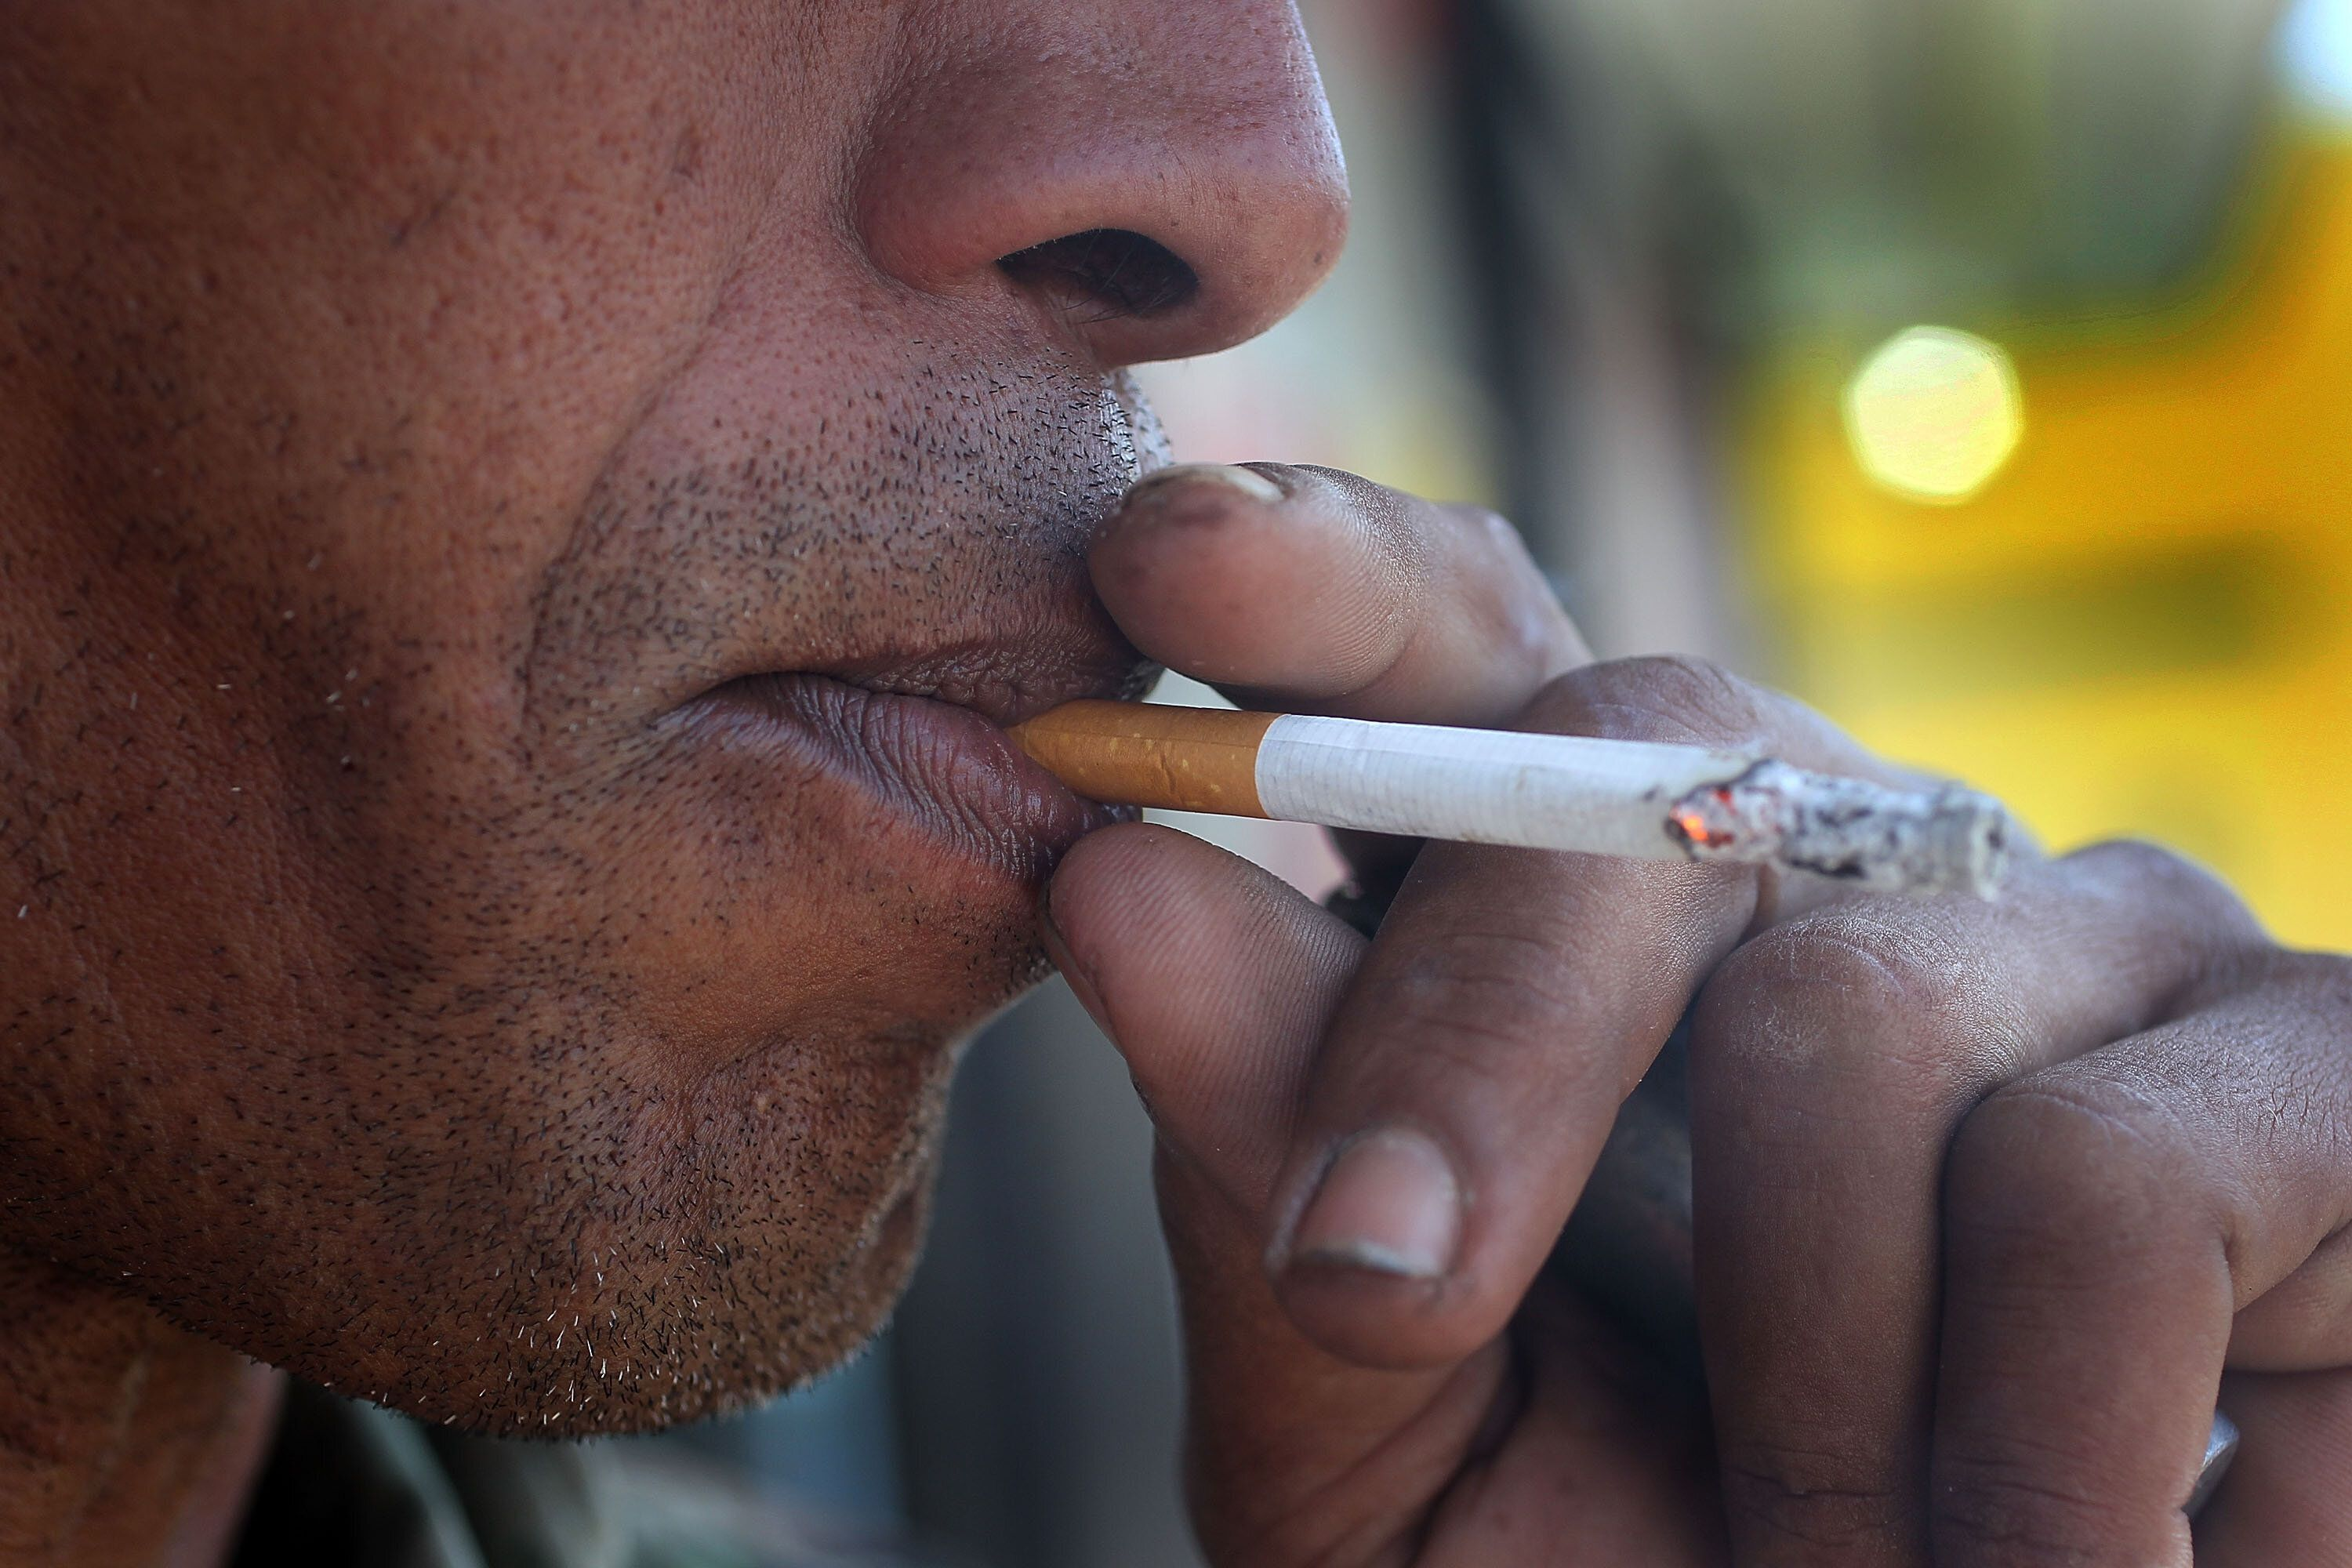 The Food and Drug Administration last month announced plans to ban menthol cigarettes, noting that doing so couldencour